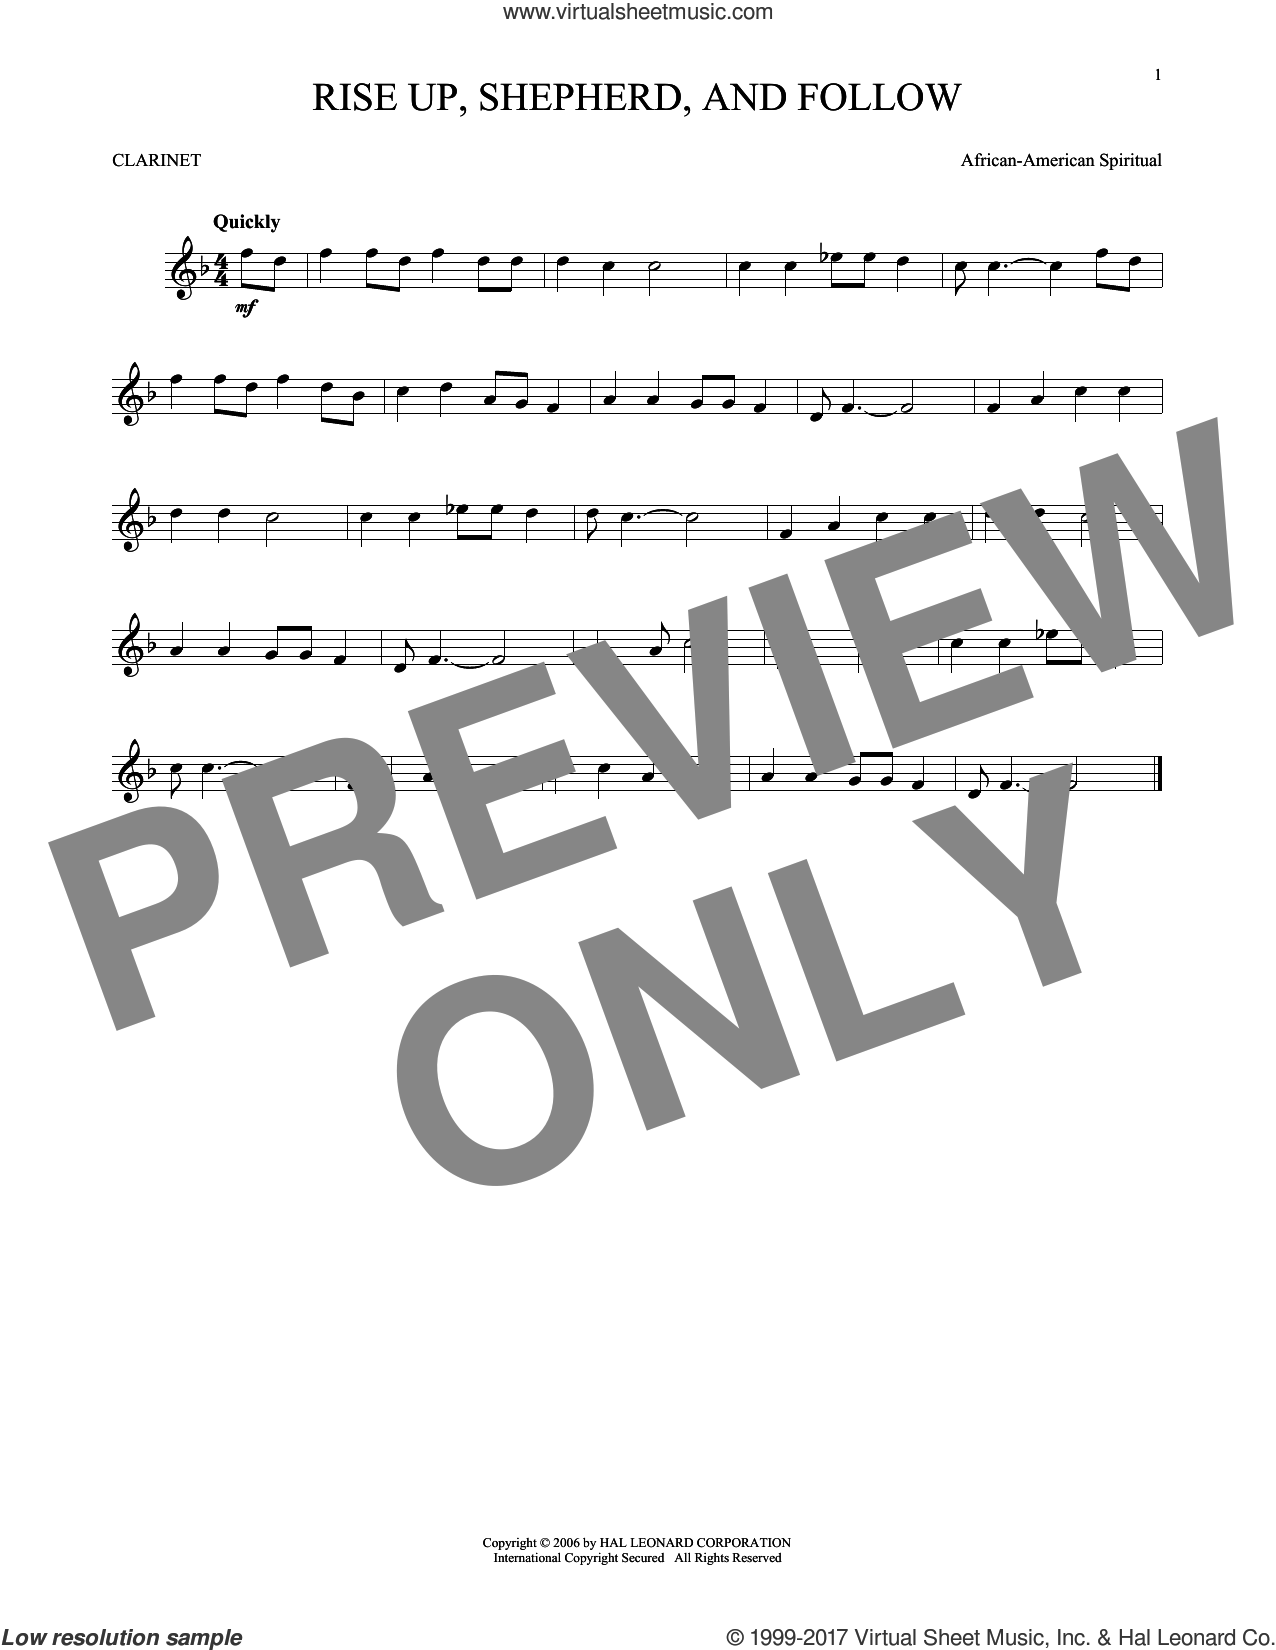 Rise Up, Shepherd, And Follow sheet music for clarinet solo, intermediate skill level